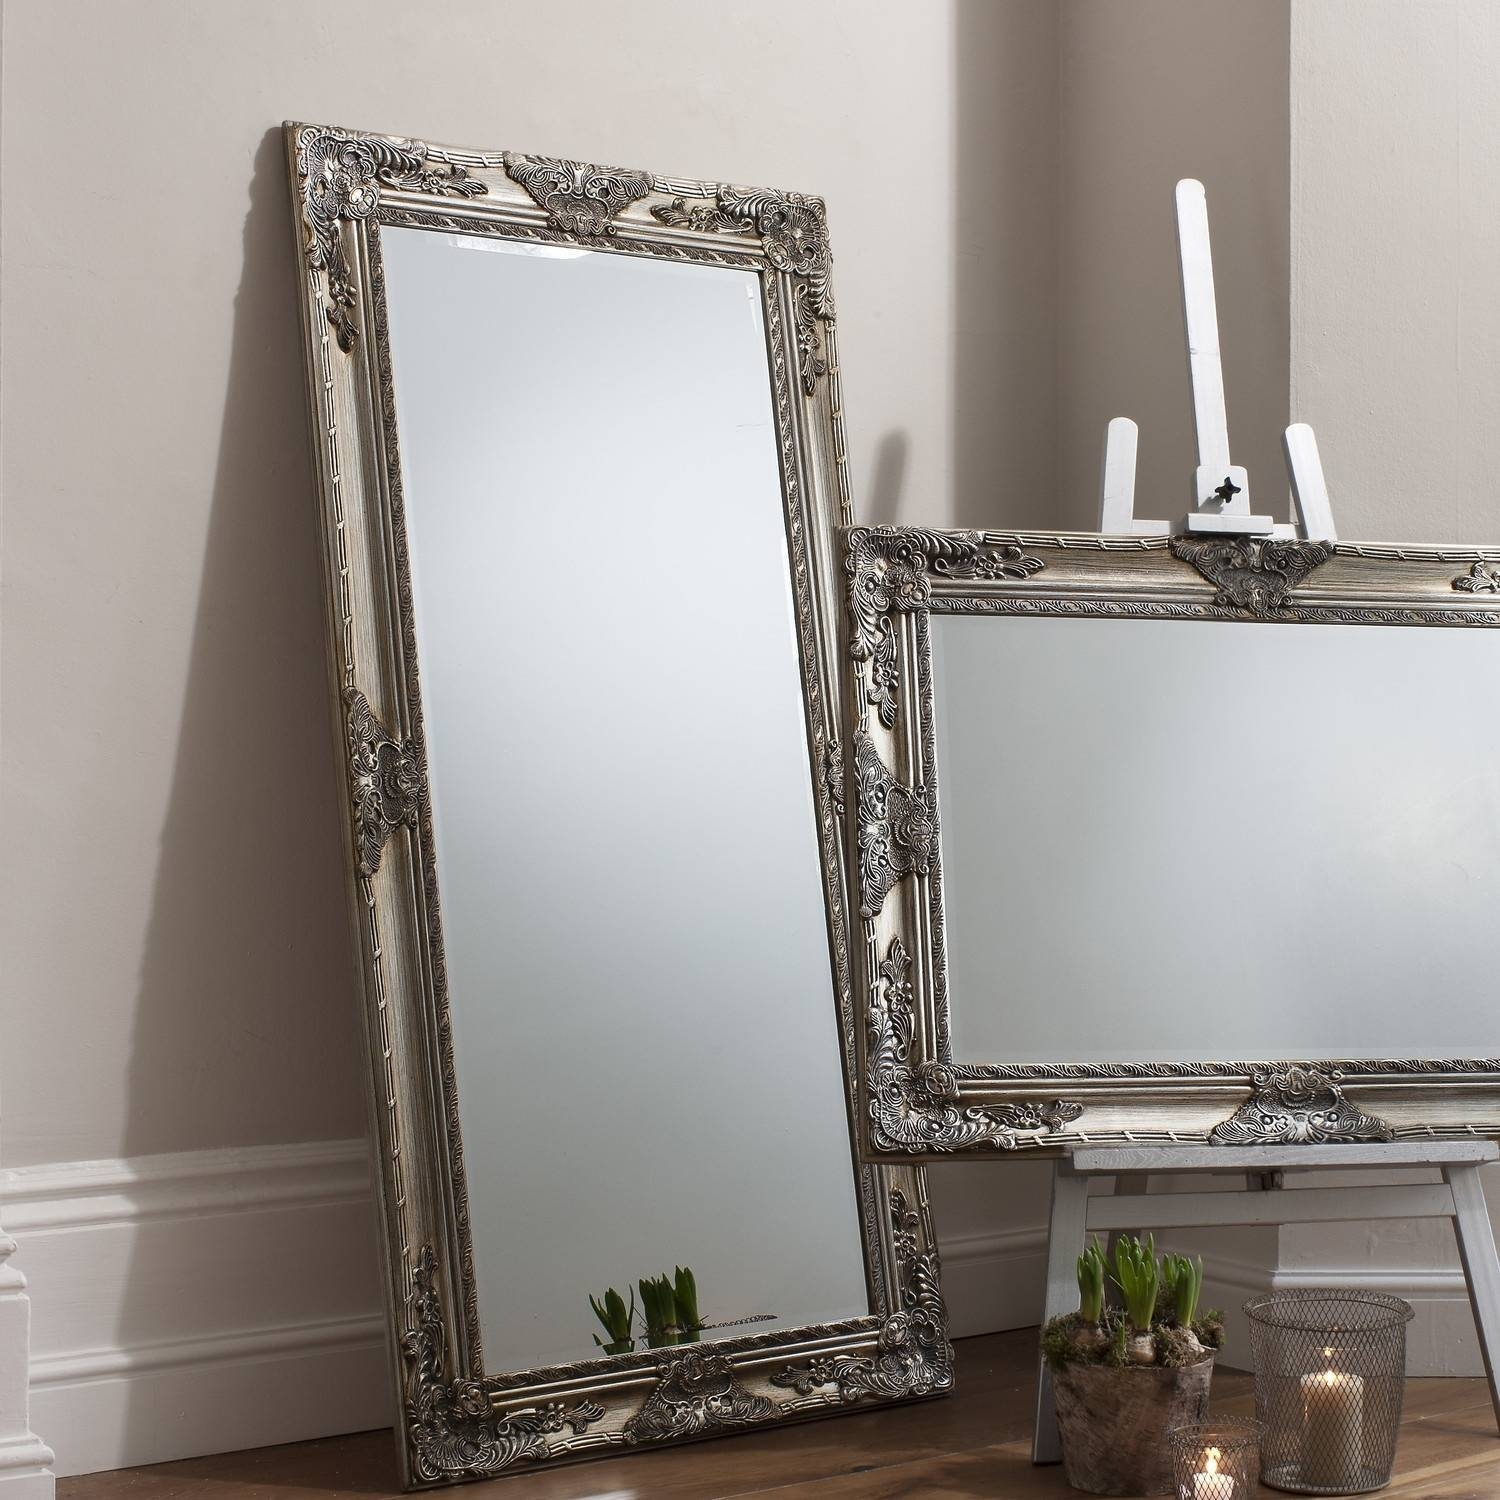 Mirror : Flooring : Extra Large Floor Standing Mirrors Inside with regard to Extra Large Floor Standing Mirrors (Image 12 of 15)